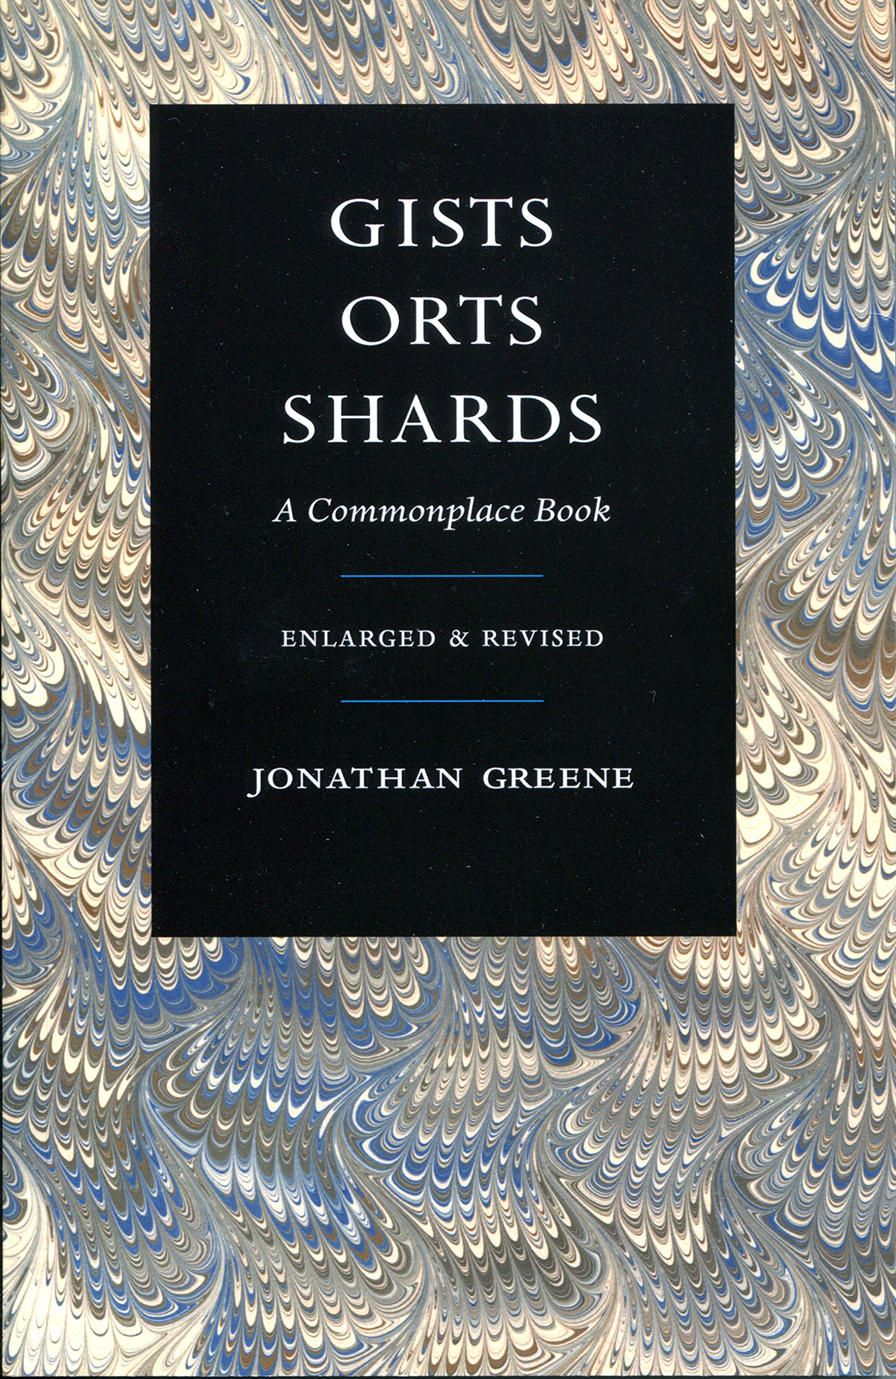 Gists, Orts, Shards: A Commonplace Book, Enlarged & Revised